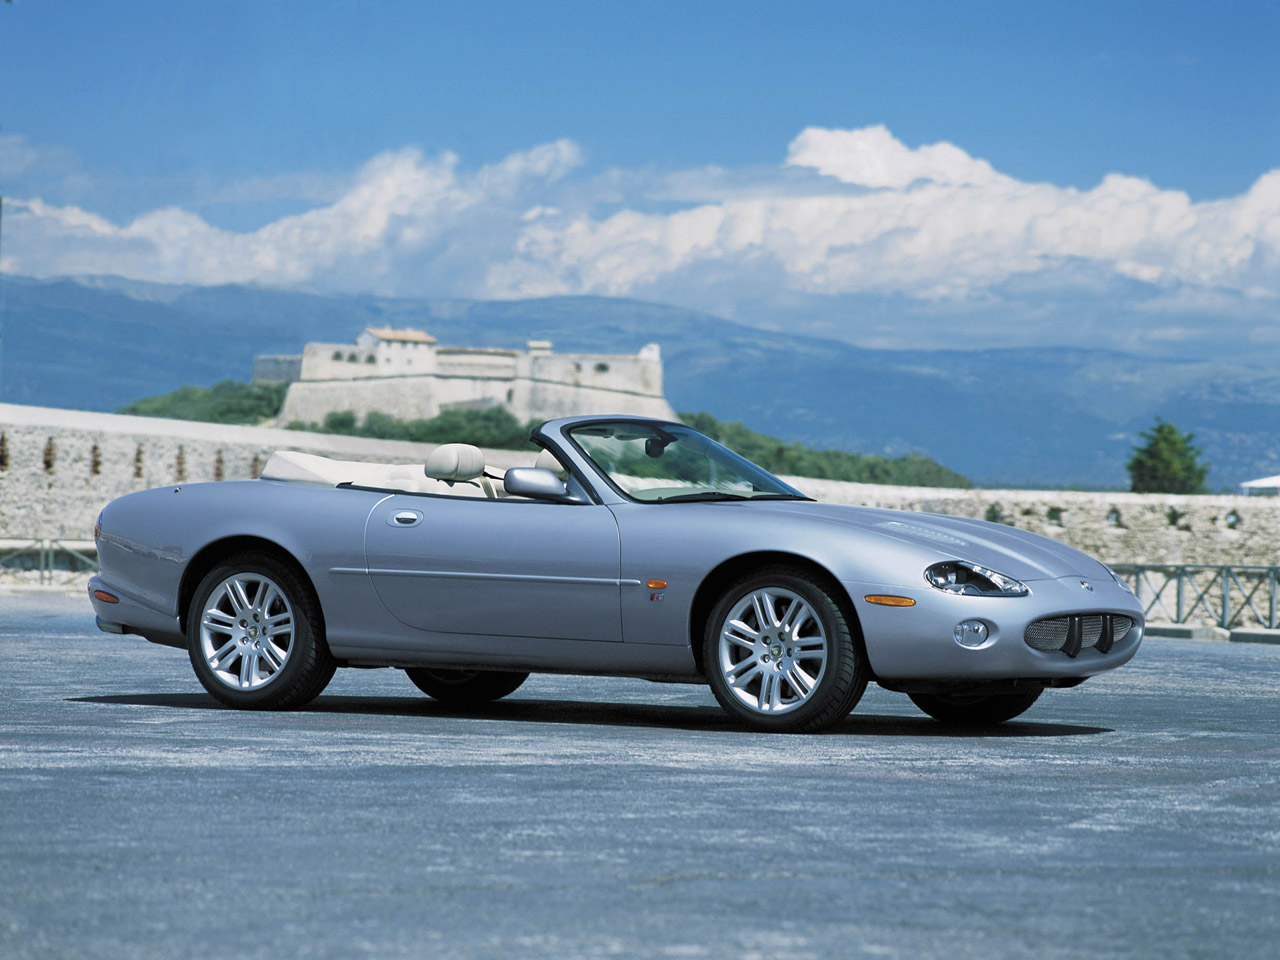 2003 Jaguar XKR Convertible Silver Sideview High Resolution Wallpaper Free